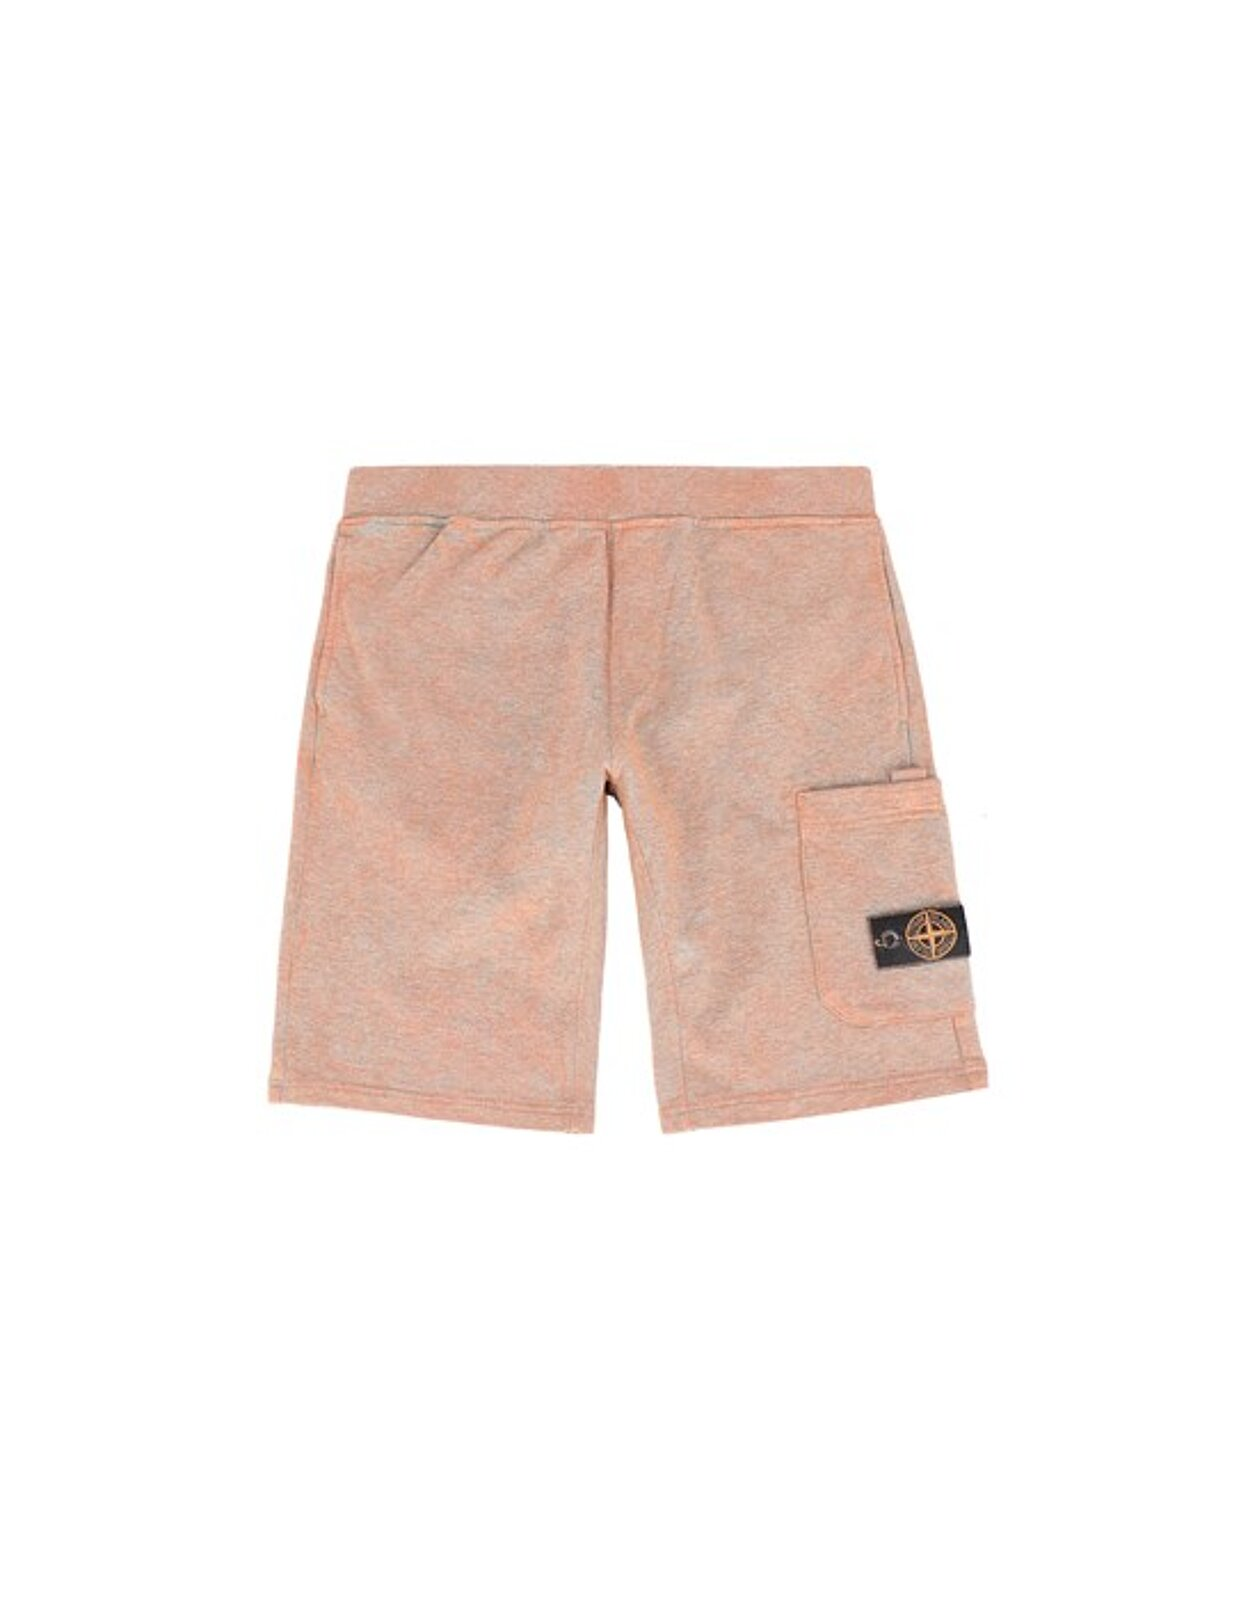 61244 Dust Colour Treatment - Stone Island Junior